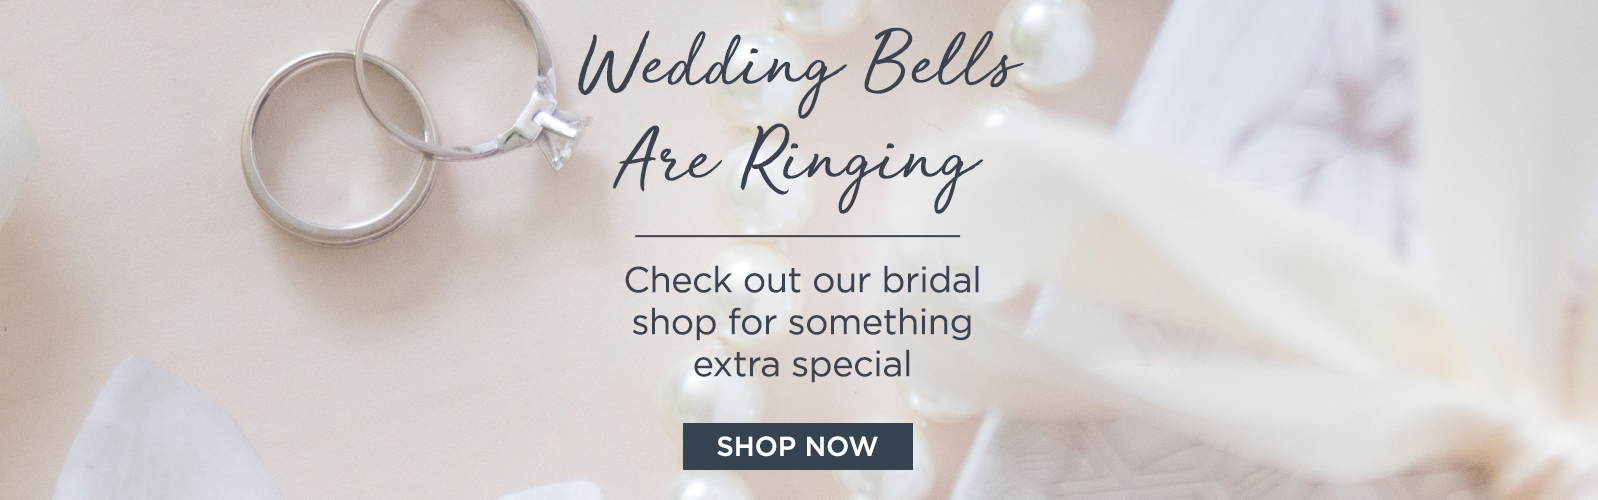 Wedding Bells Are Ringing  Check out our bridal shop for something extra special SHOP NOW